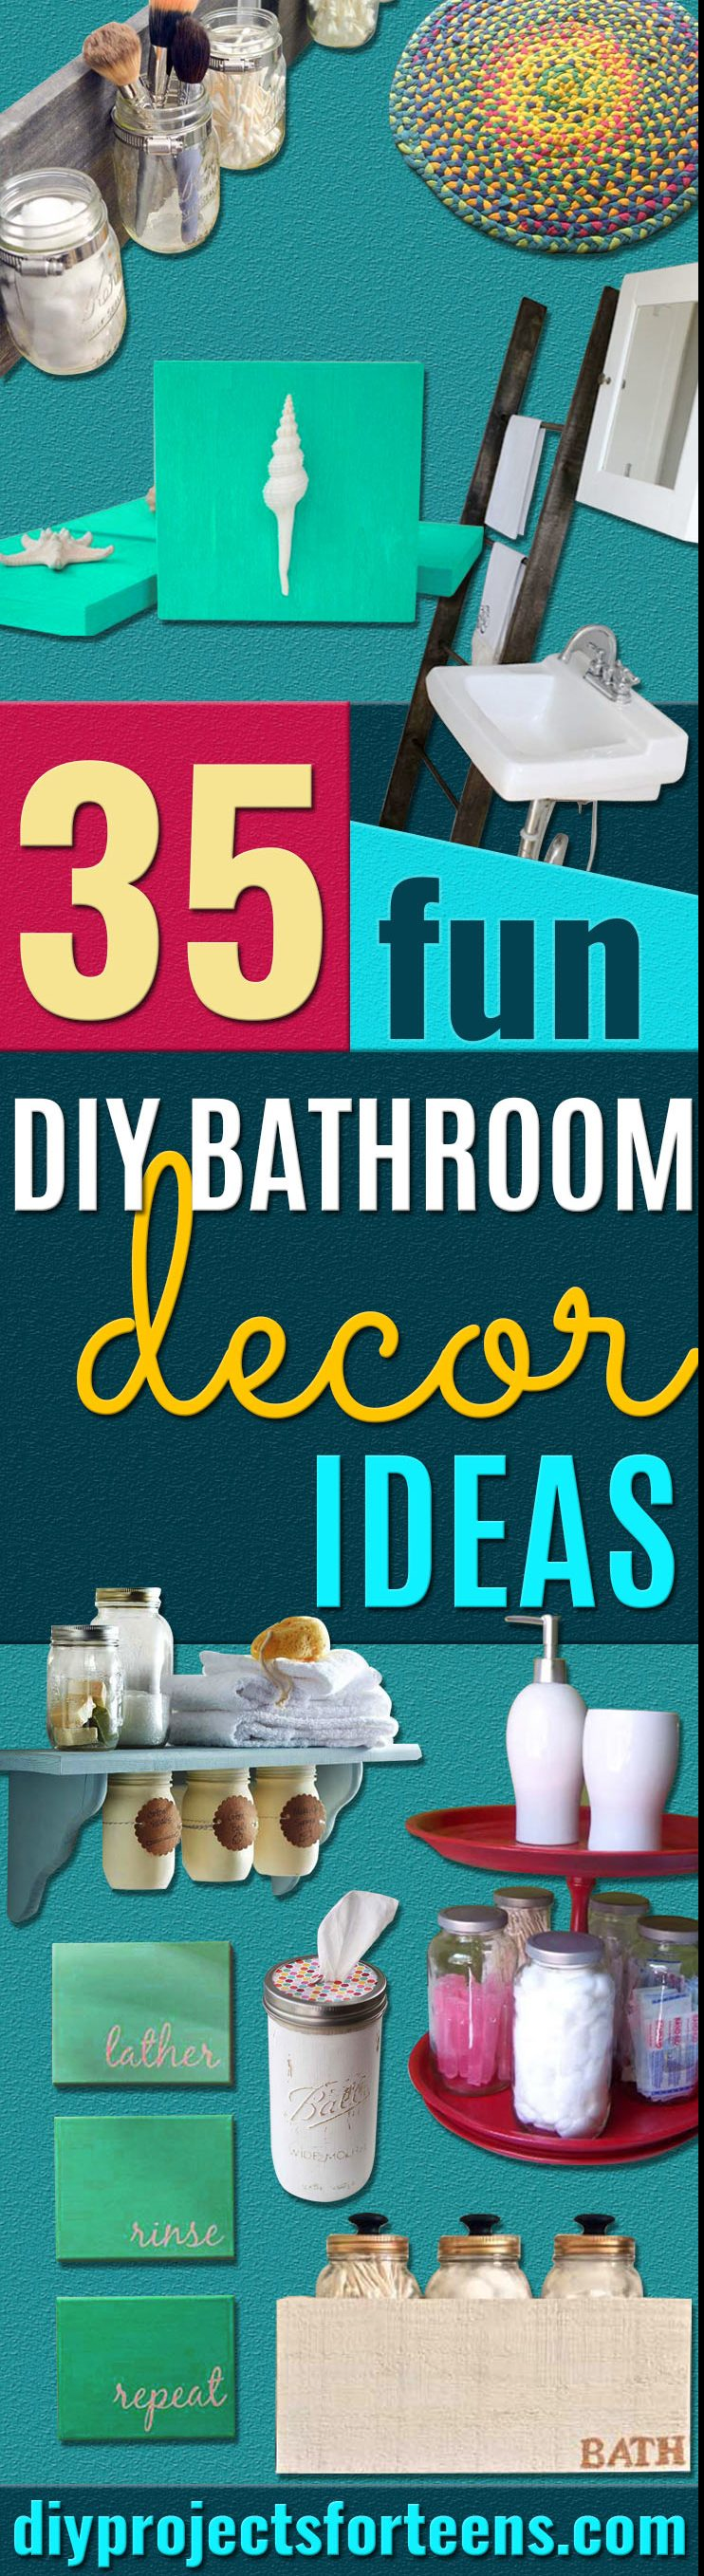 DIY Bathroom Decor Ideas for Teens - Best Creative, Cool Bath Decorations and Accessories for Teenagers - Easy, Cheap, Cute and Quick Craft Projects That Are Fun To Make. Easy to Follow Step by Step Tutorials